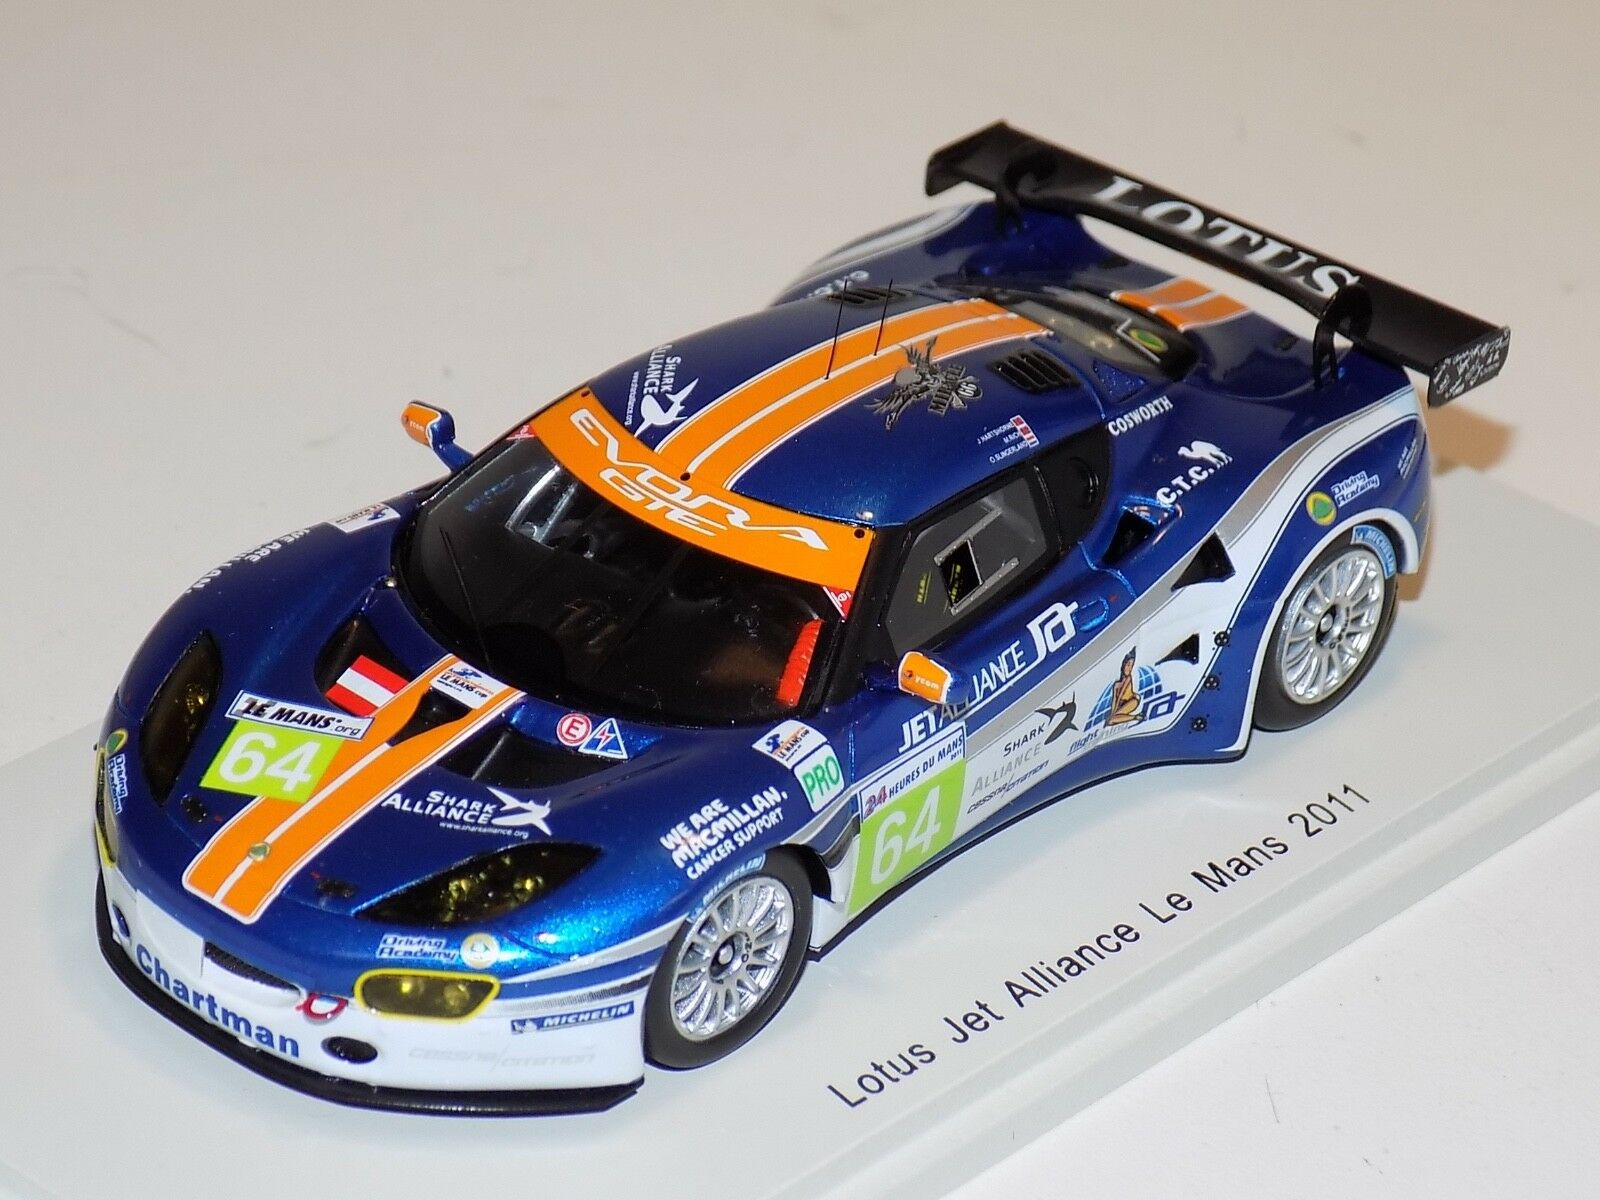 1/43 Spark Lotus Jet Alliance Car   64 from 2011 24 H of LeMans  S2208